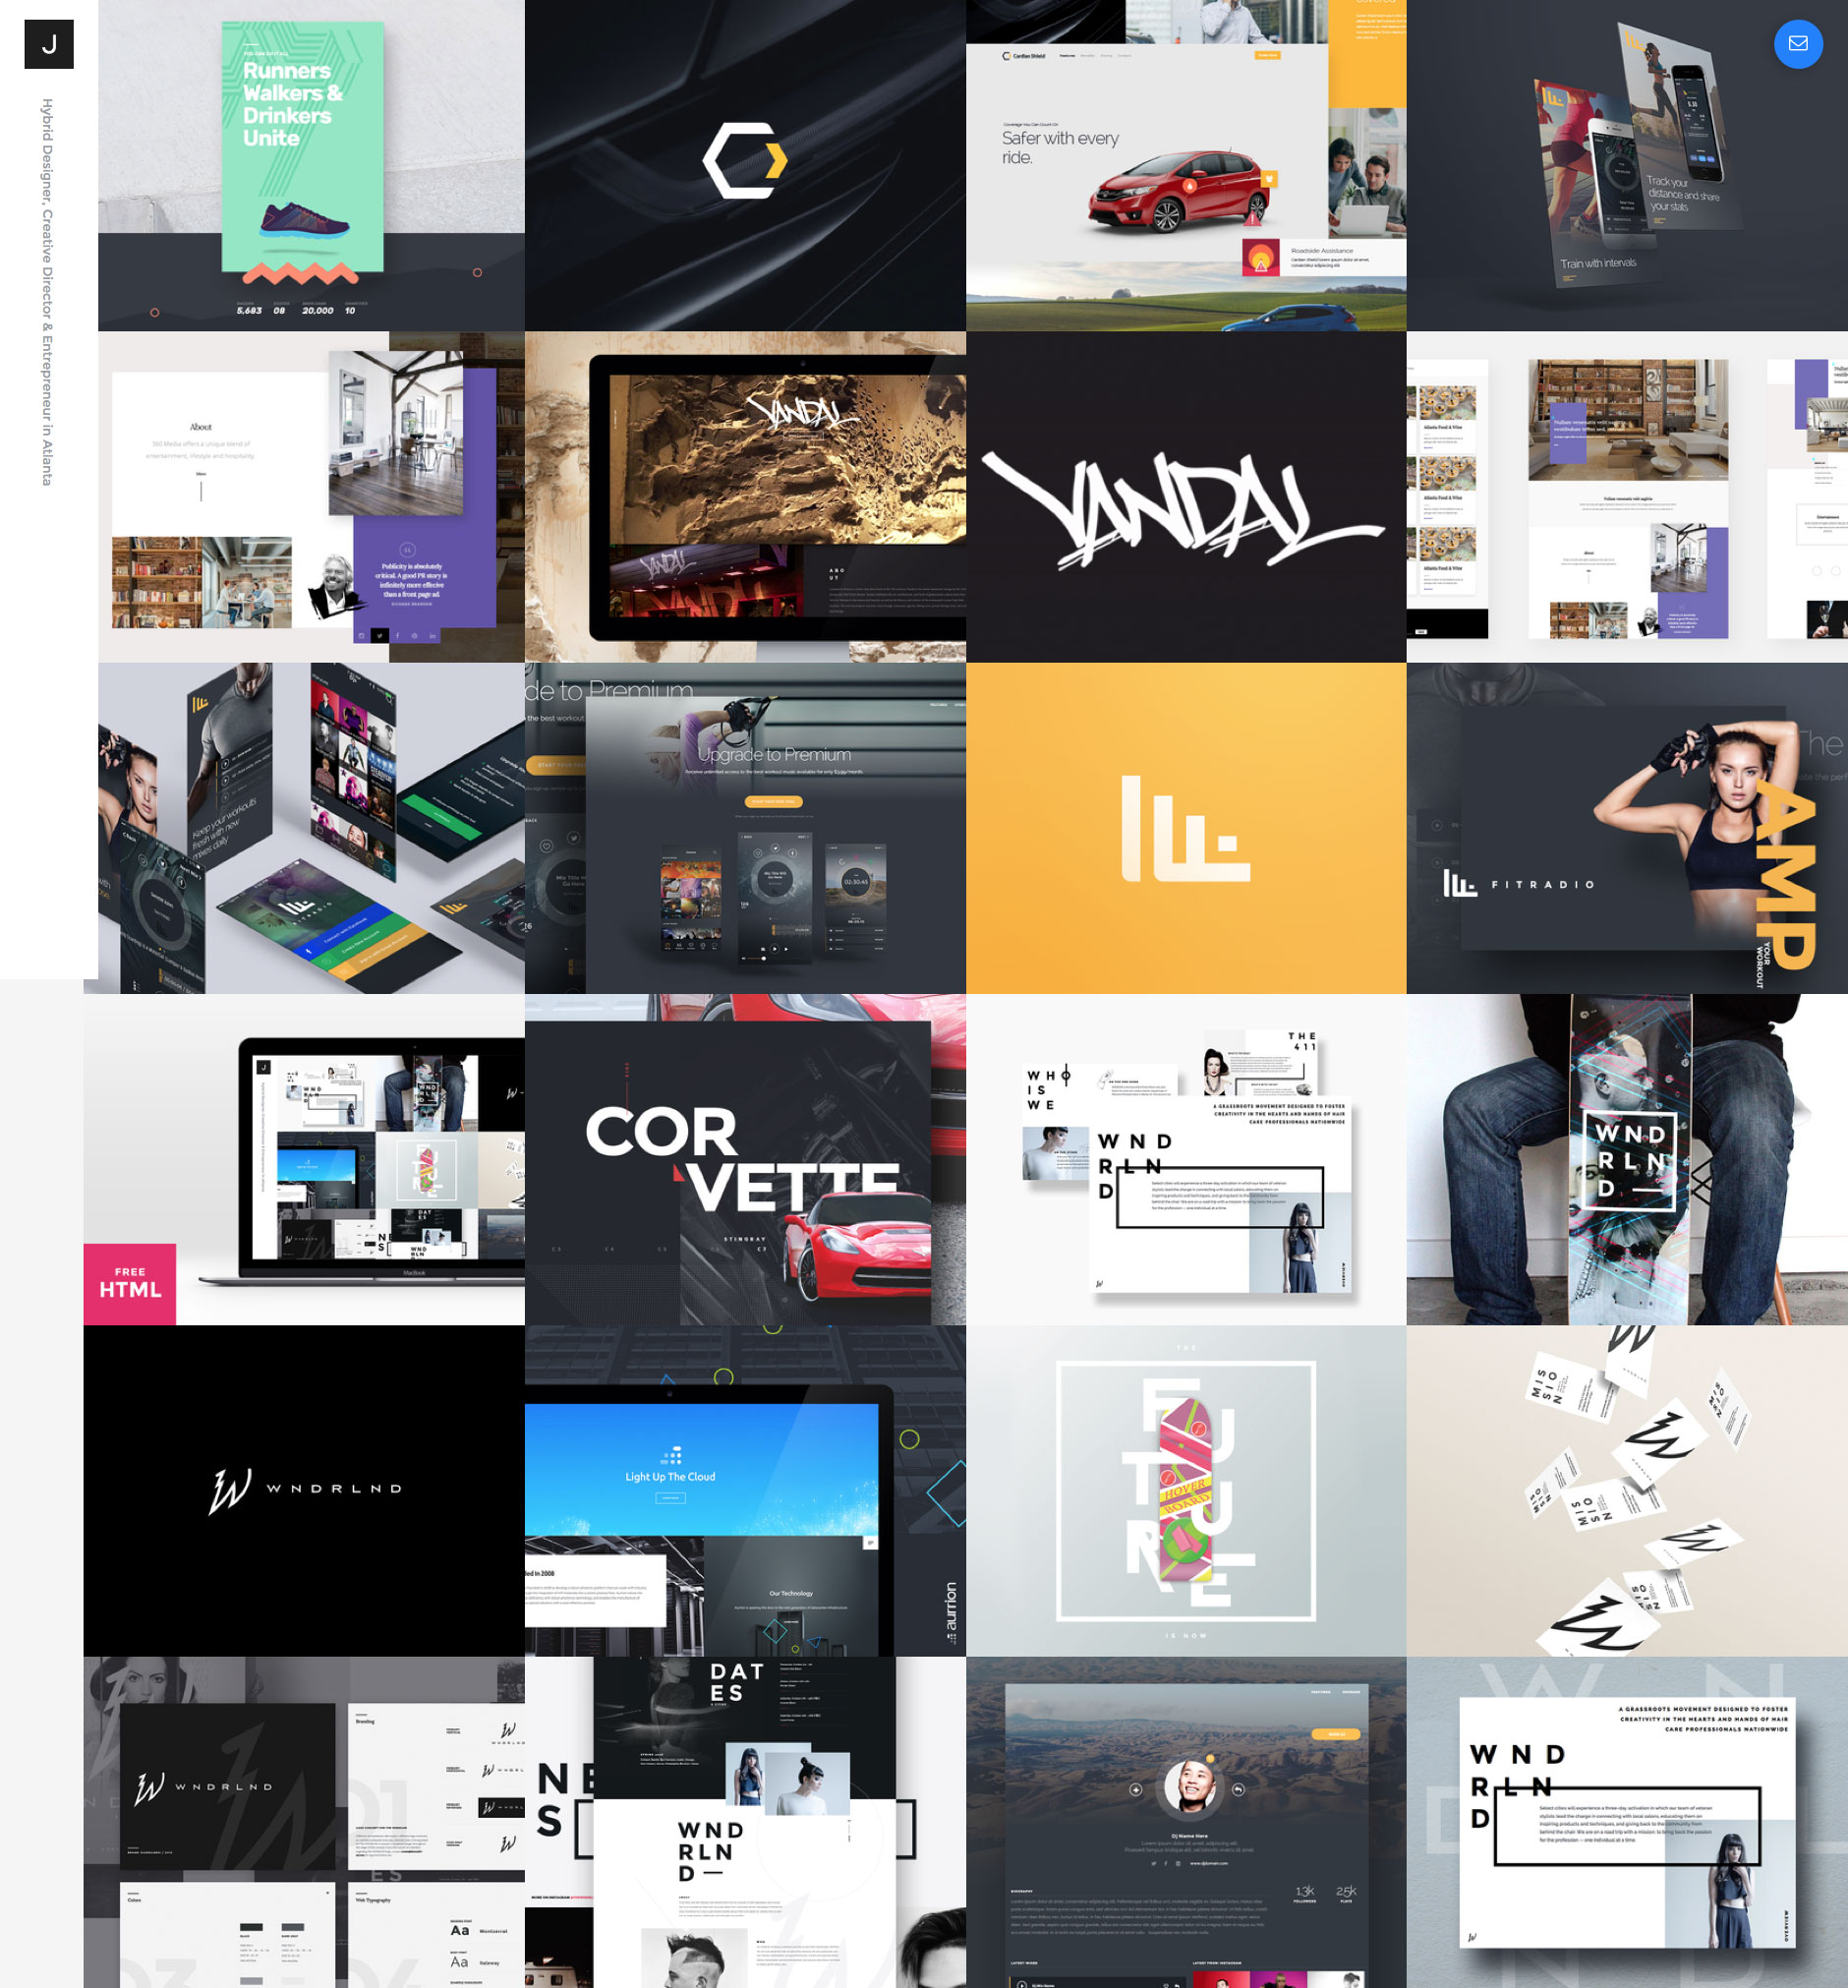 Dribbble Feed Portfolio is a free responsive HTML5 one-page website template based on the popular Bootstrap 3. It is an ideal template for creatives who want to showcase their work with simple way.